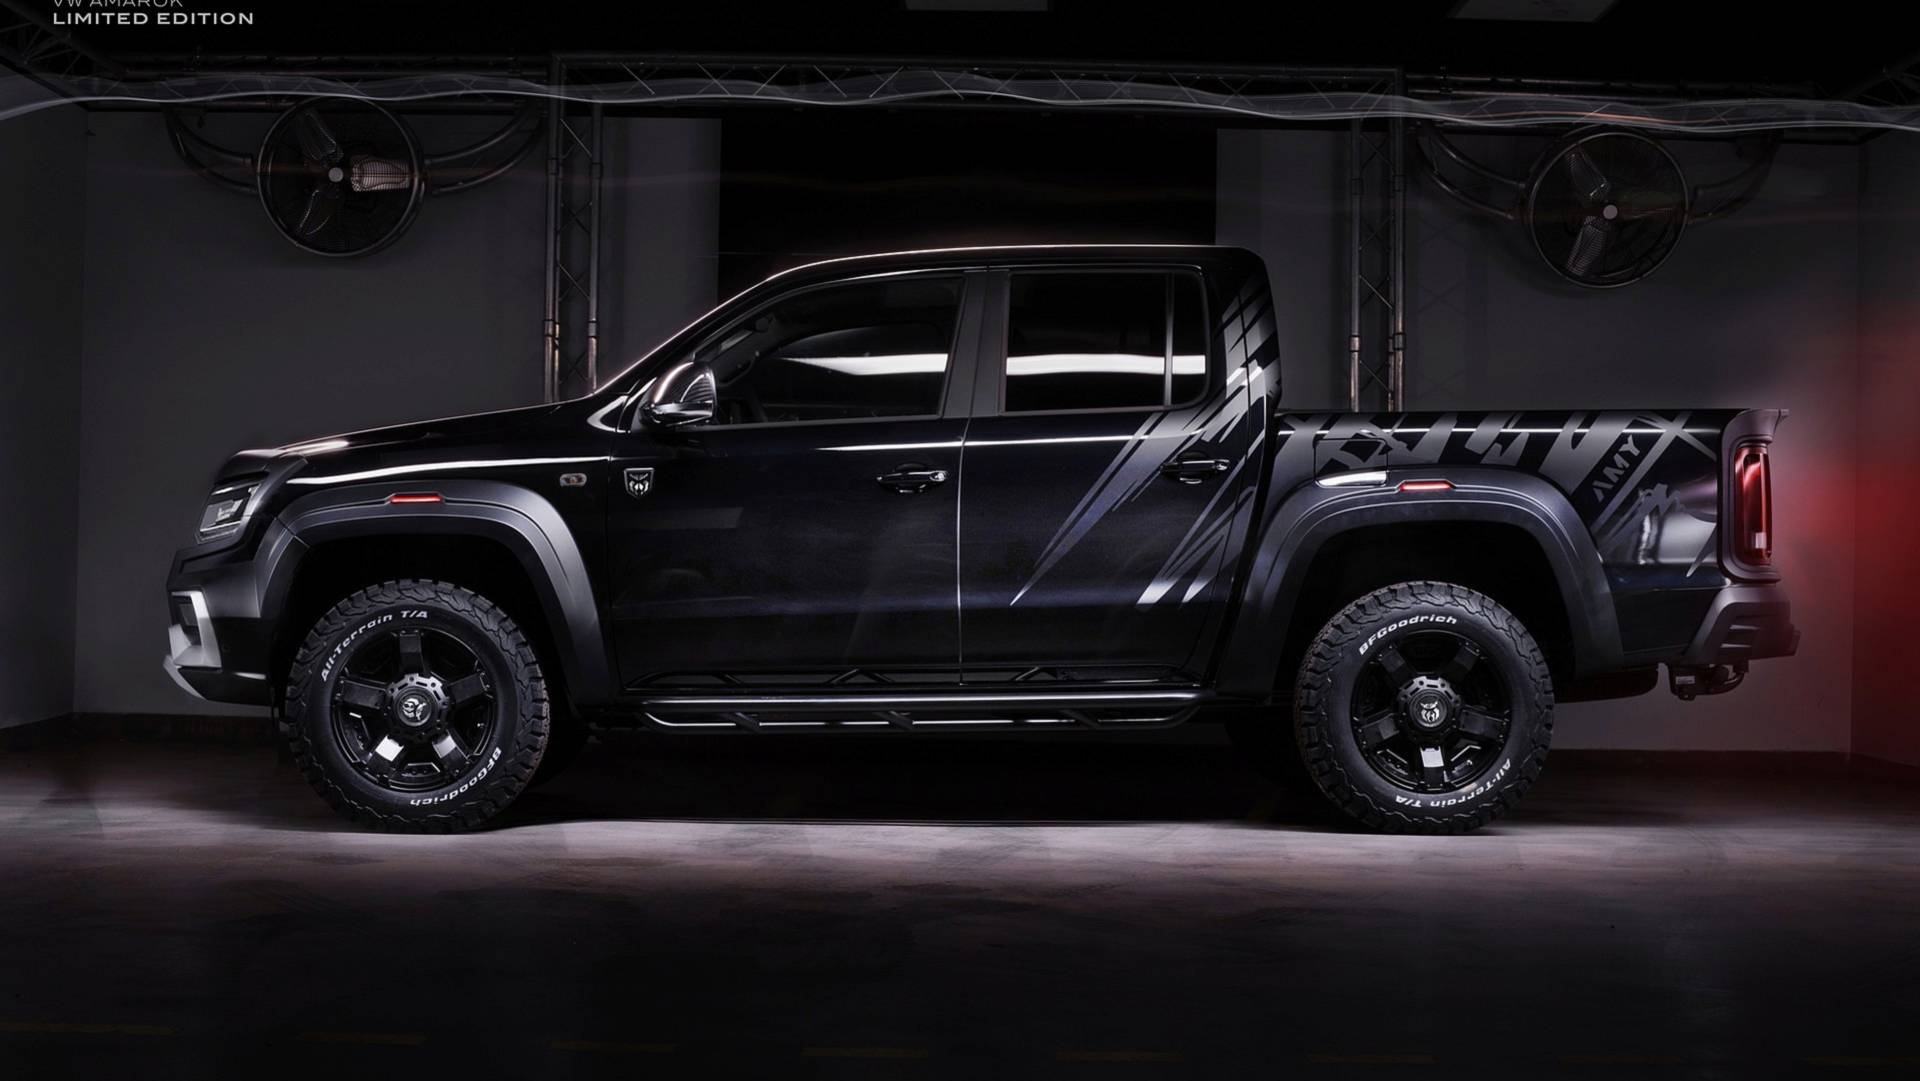 Volkswagen Amarok Amy by Carlex Design (6)